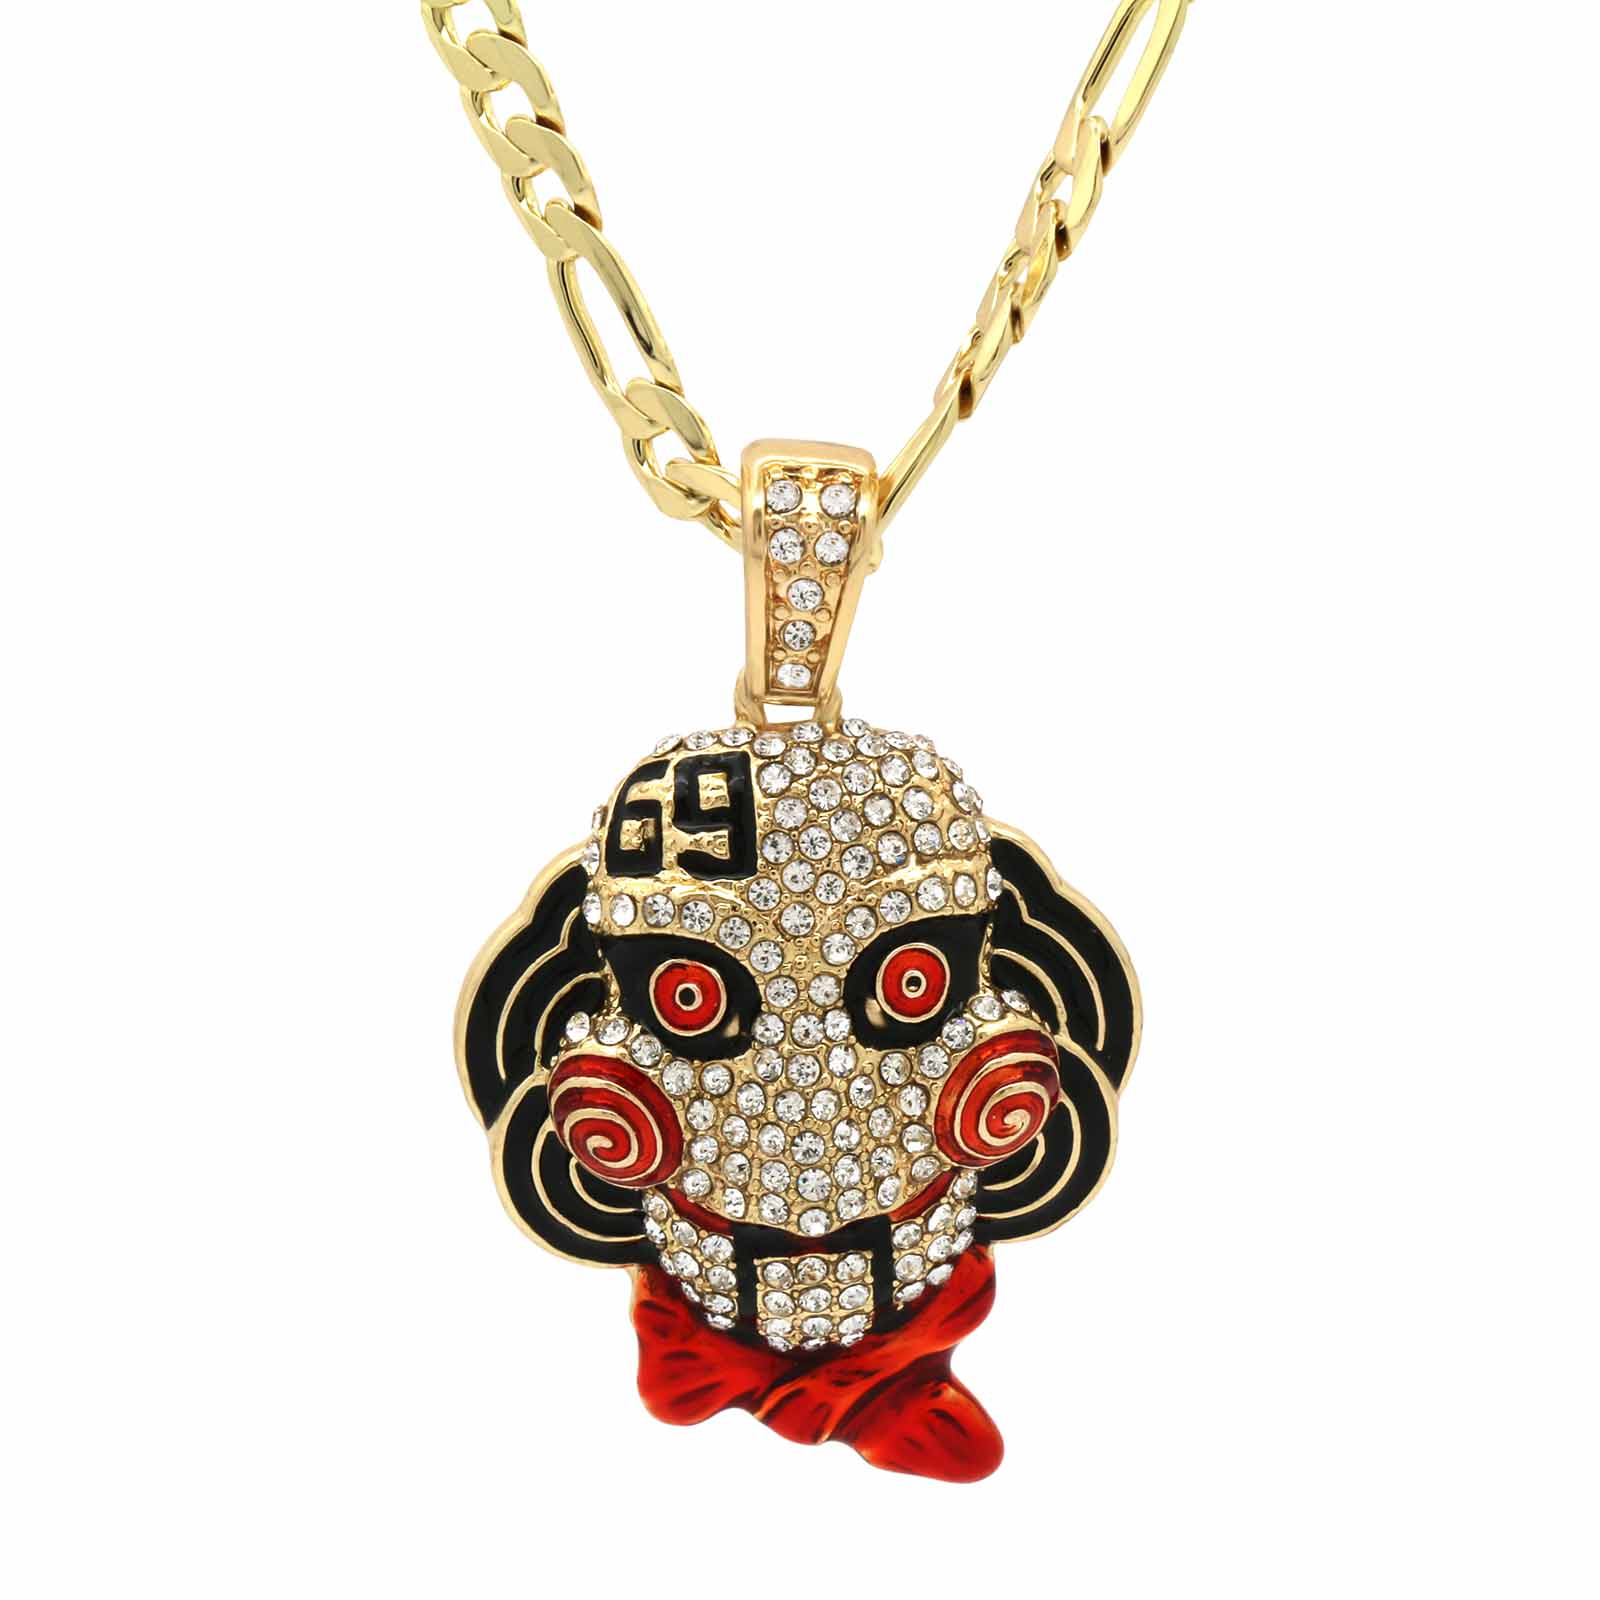 The Saw 69 Necklace